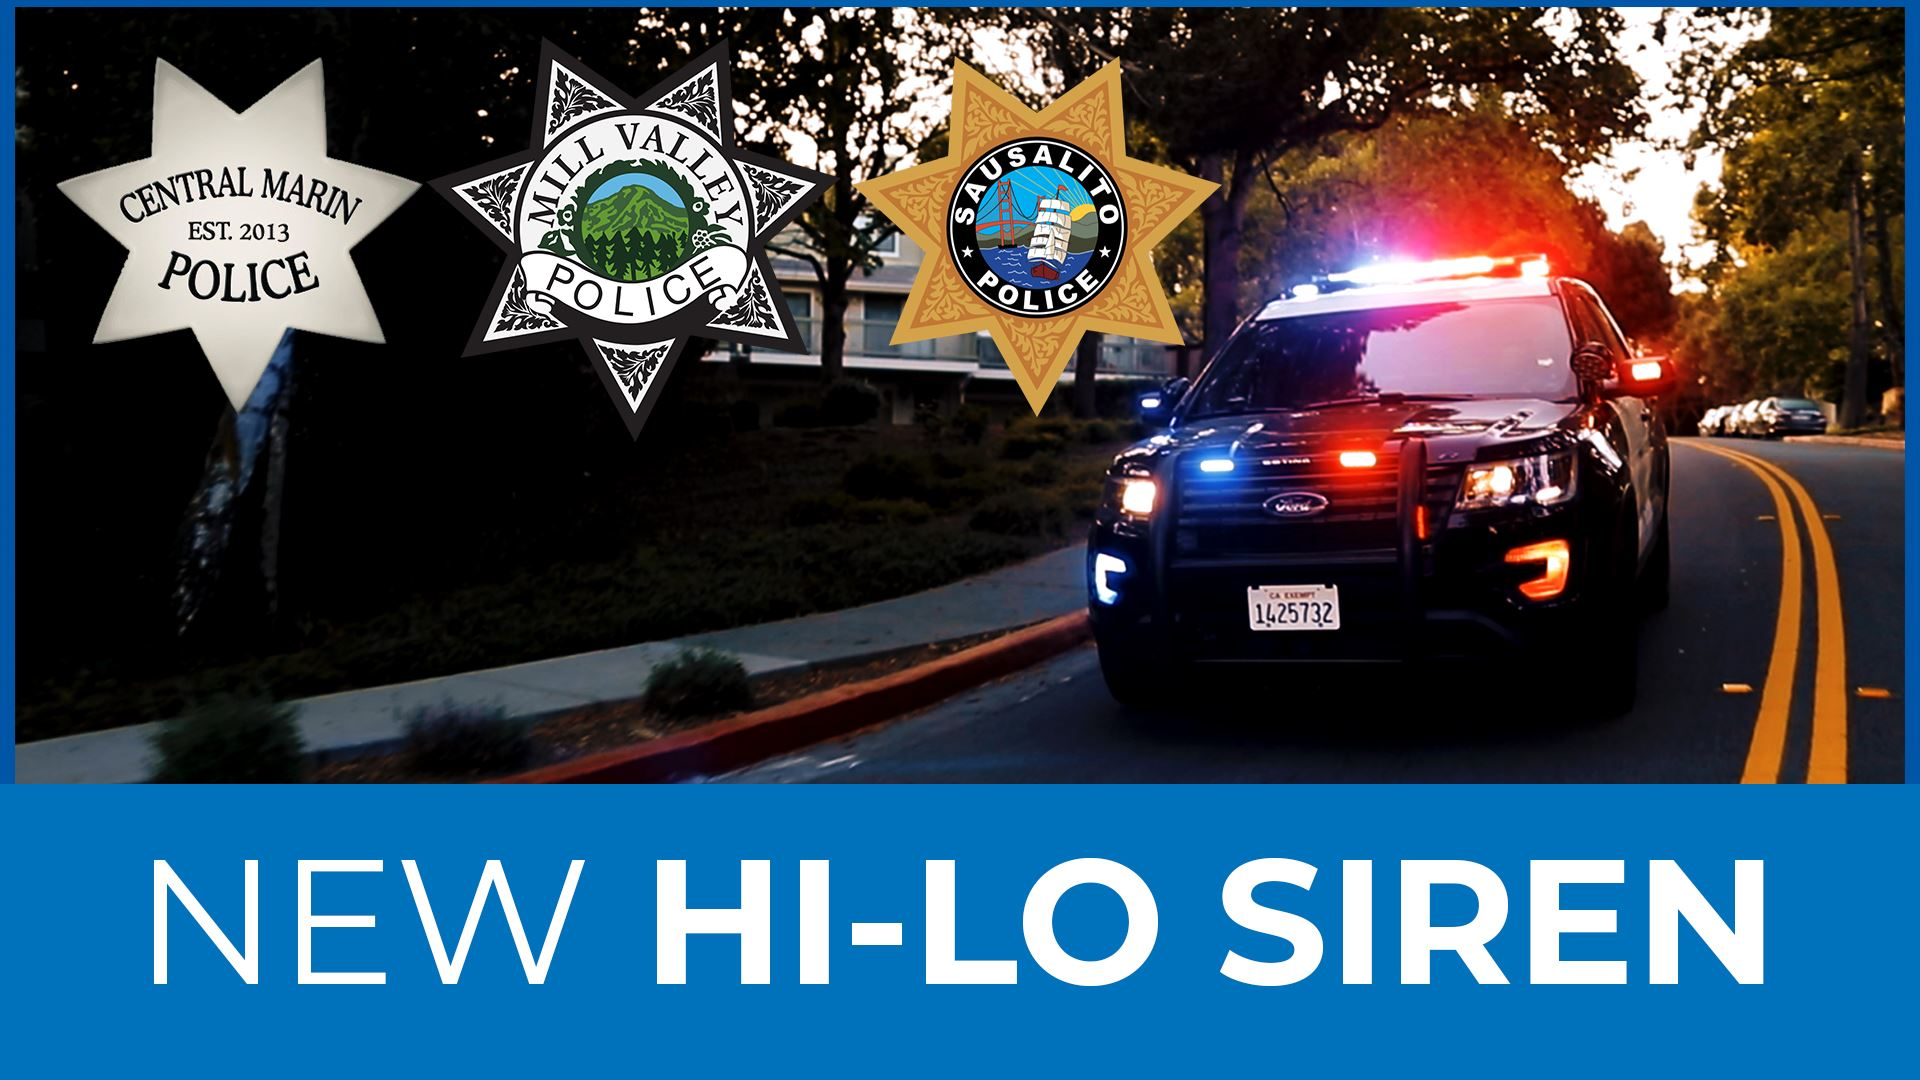 Central Marin Police Authority - Official Website | Official Website